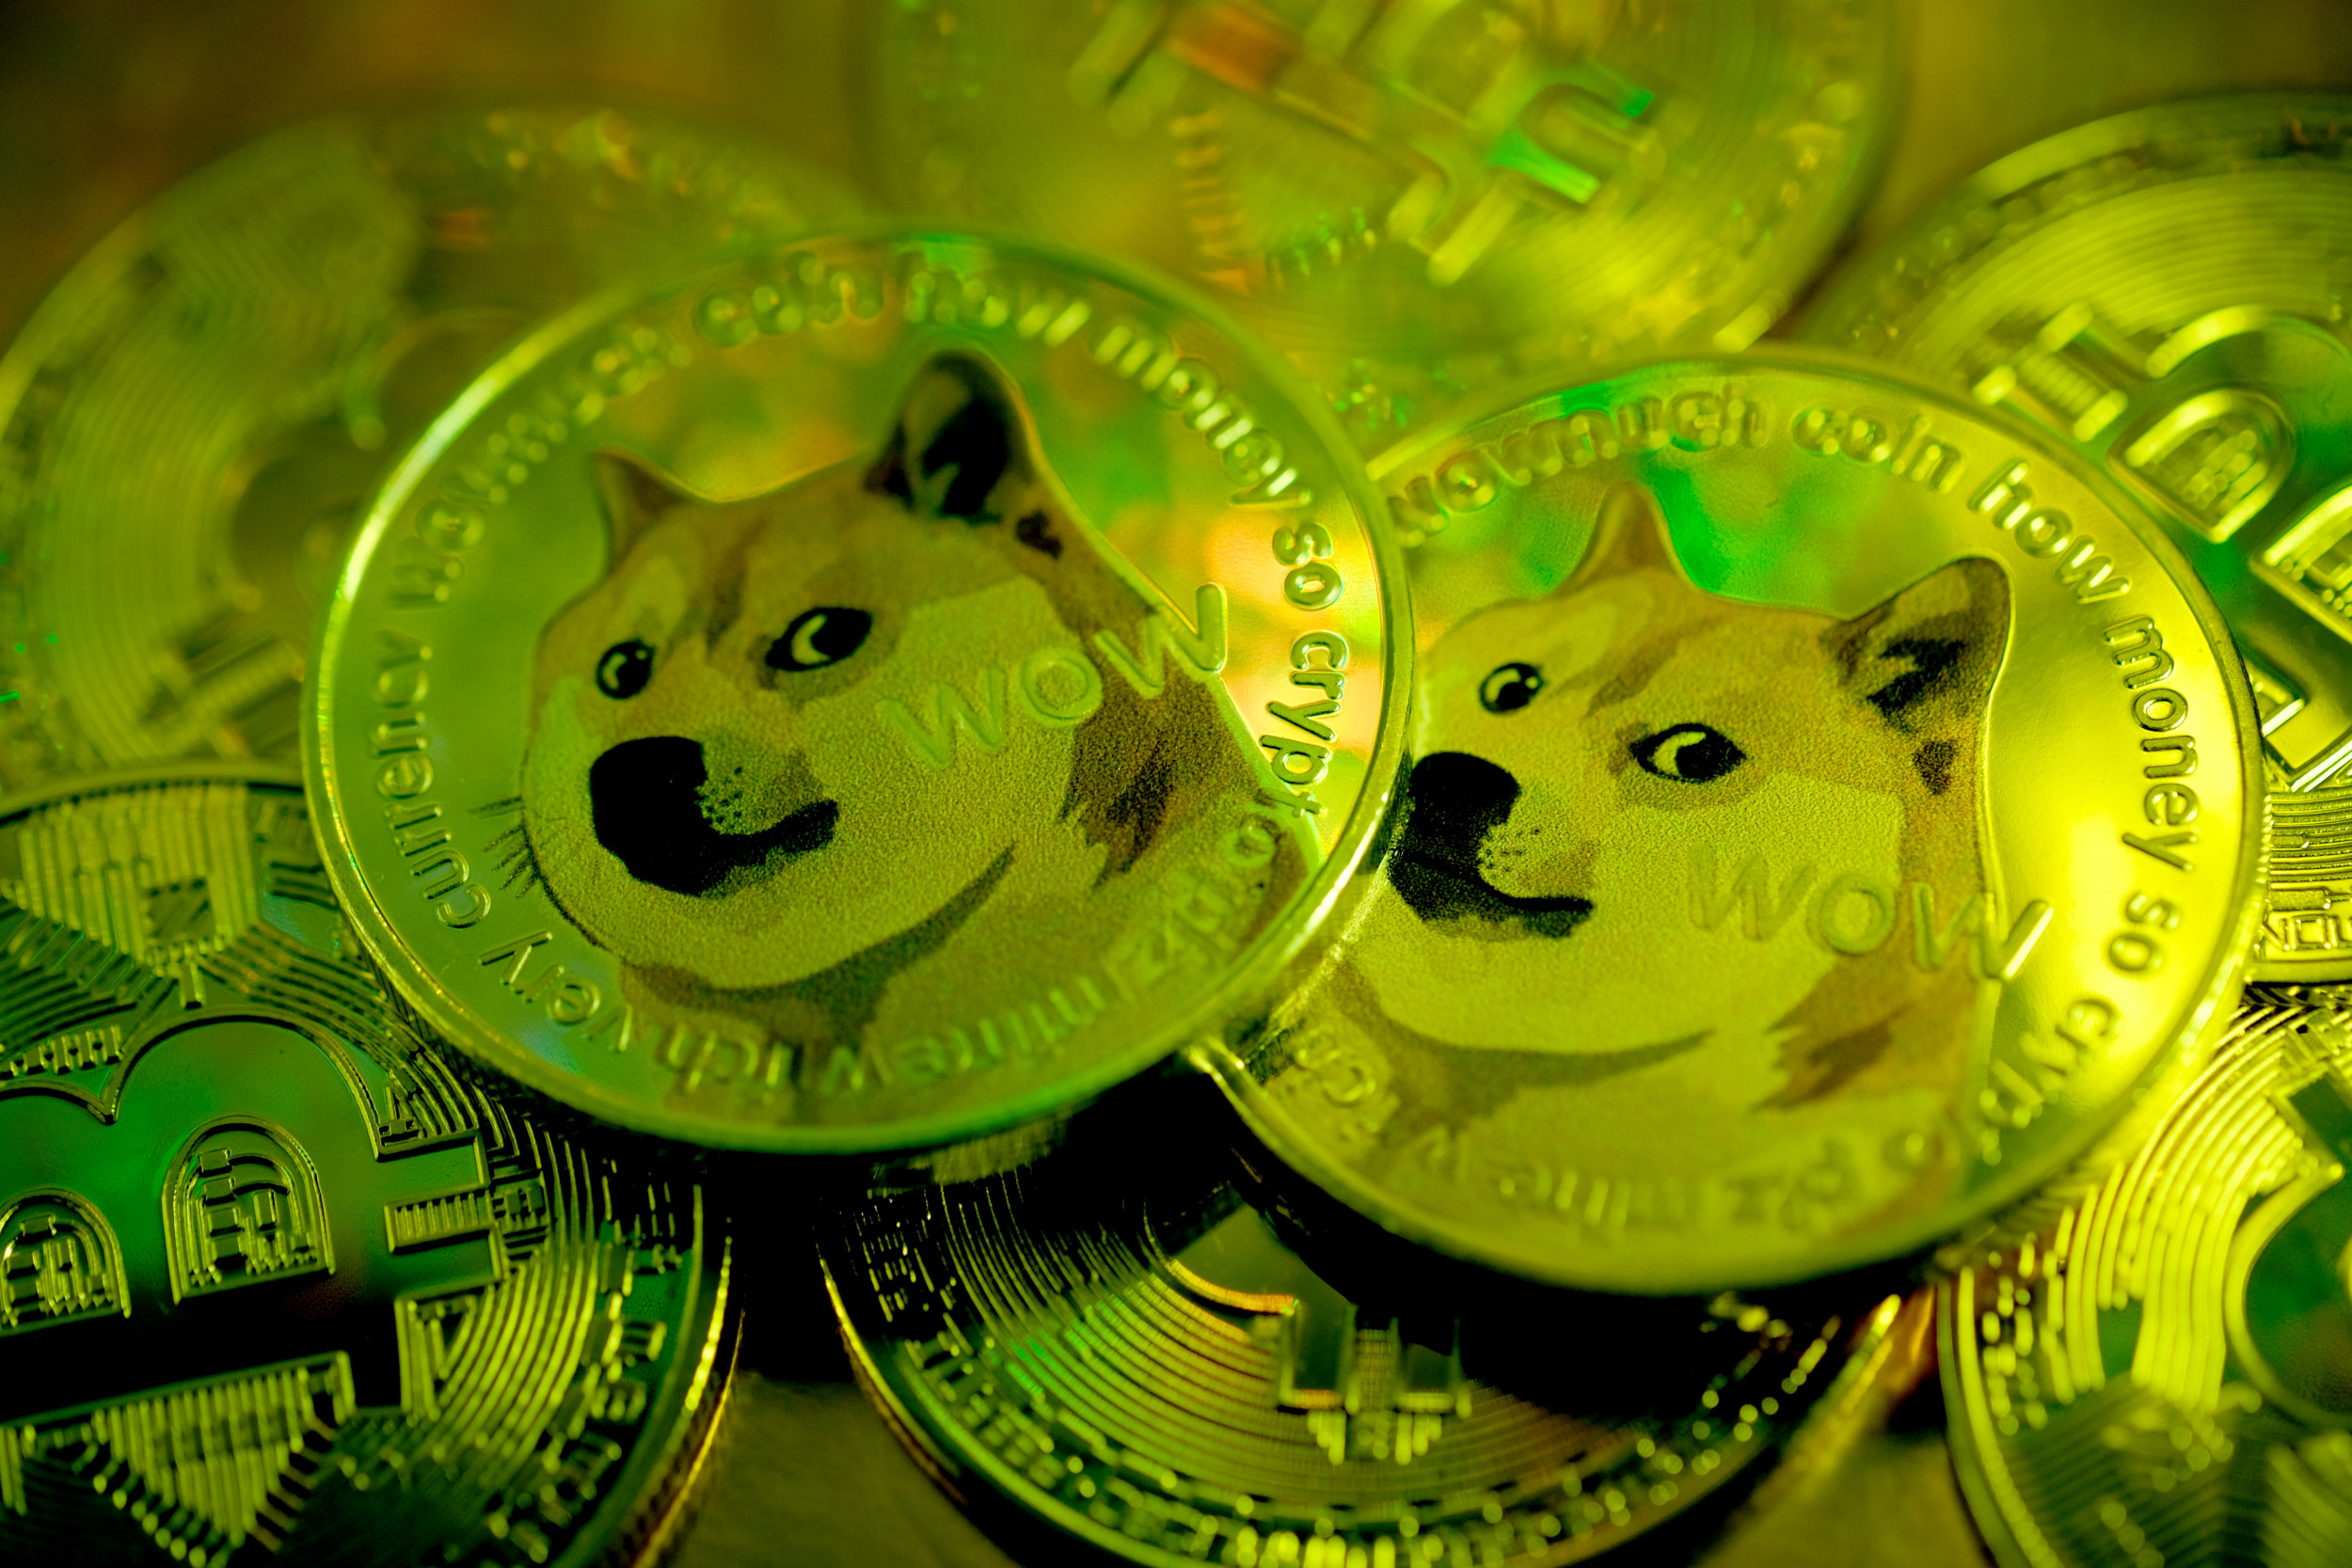 Dogecoin Price Tracker Updates As Cryptocurrency Value Soars